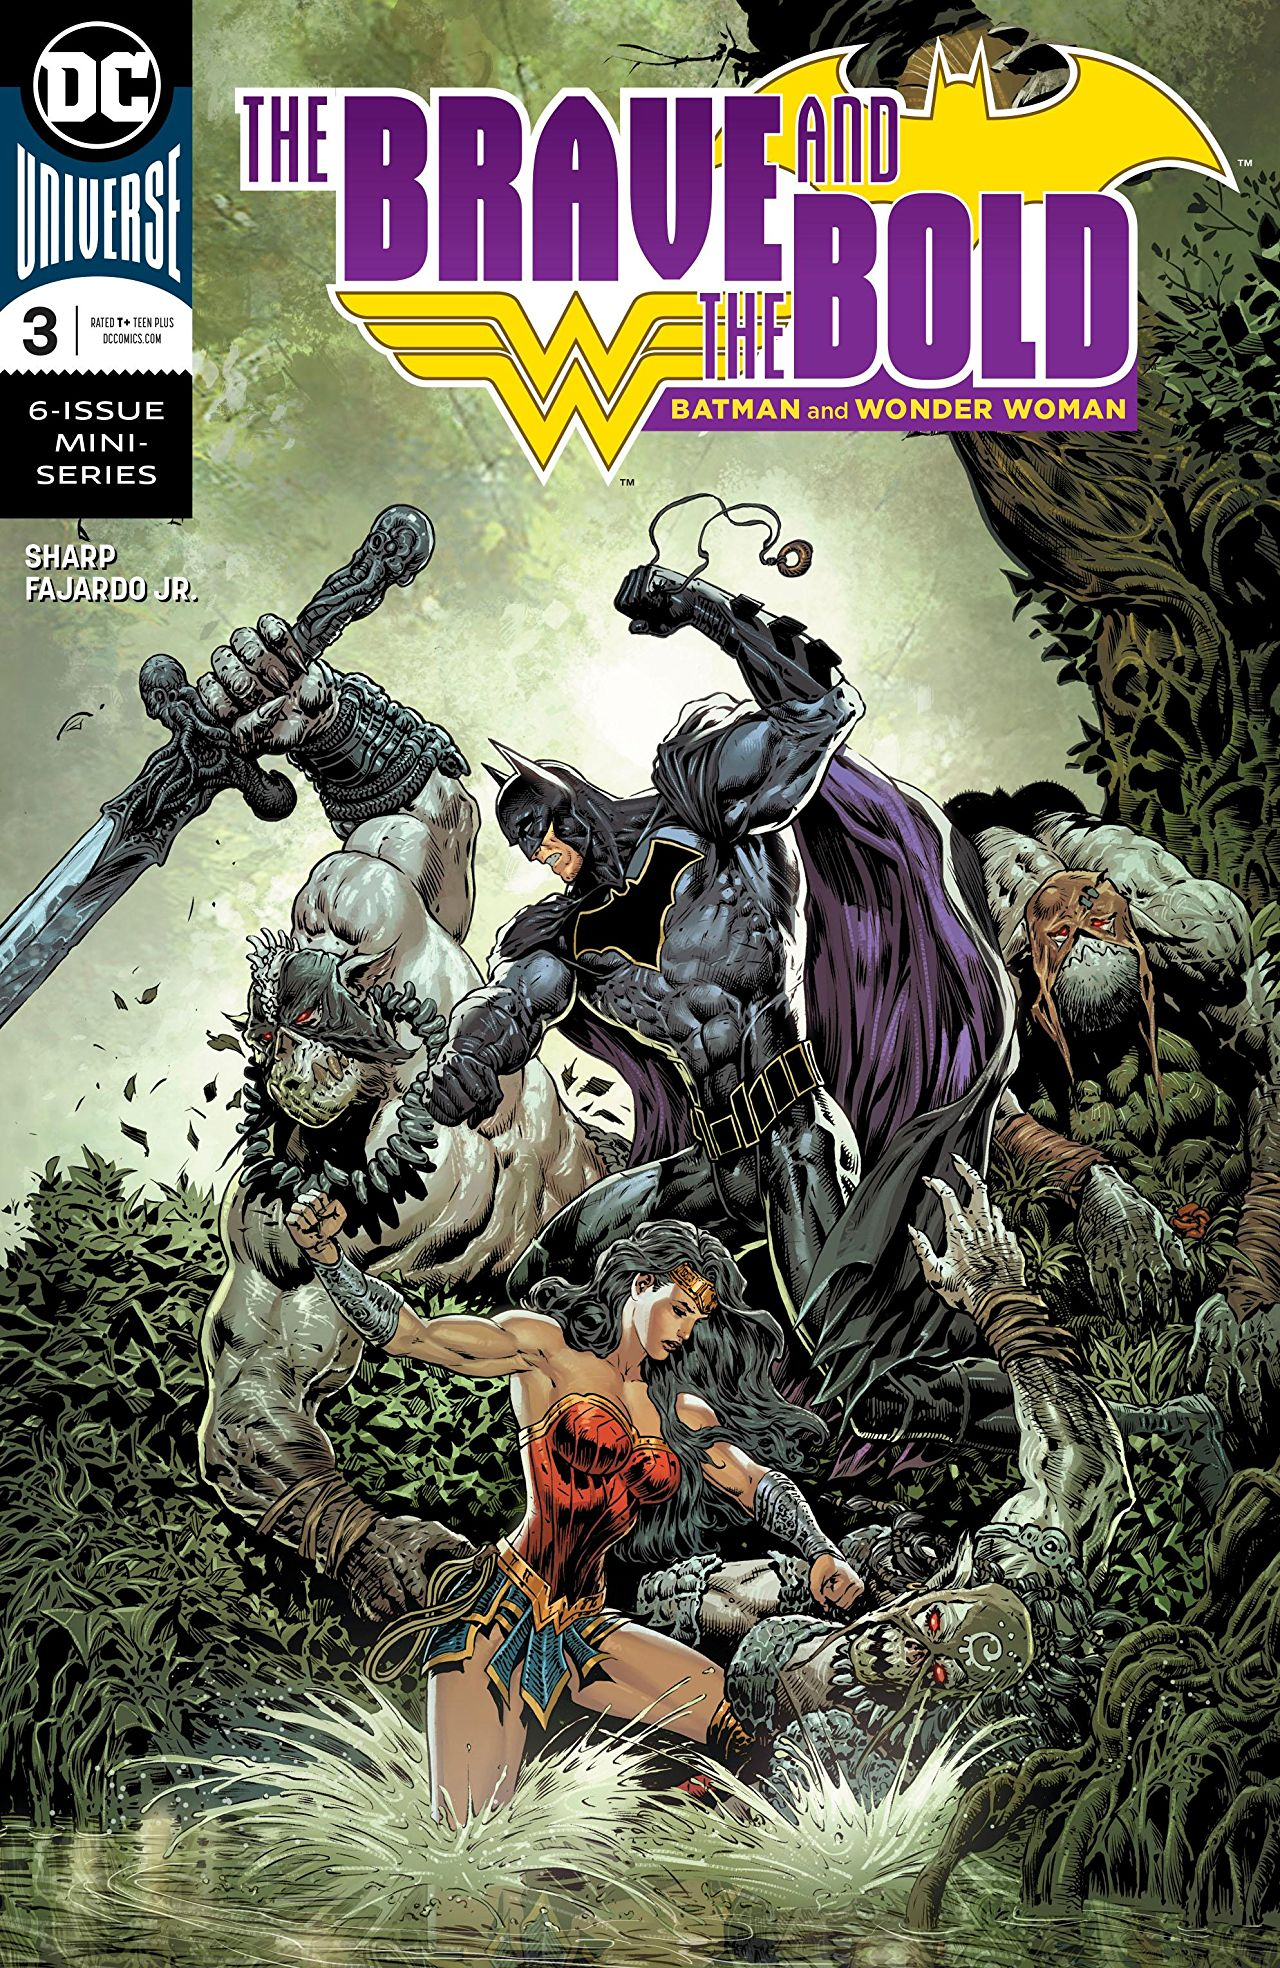 The Brave and the Bold: Batman and Wonder Woman #3 review: Time to give up on this series